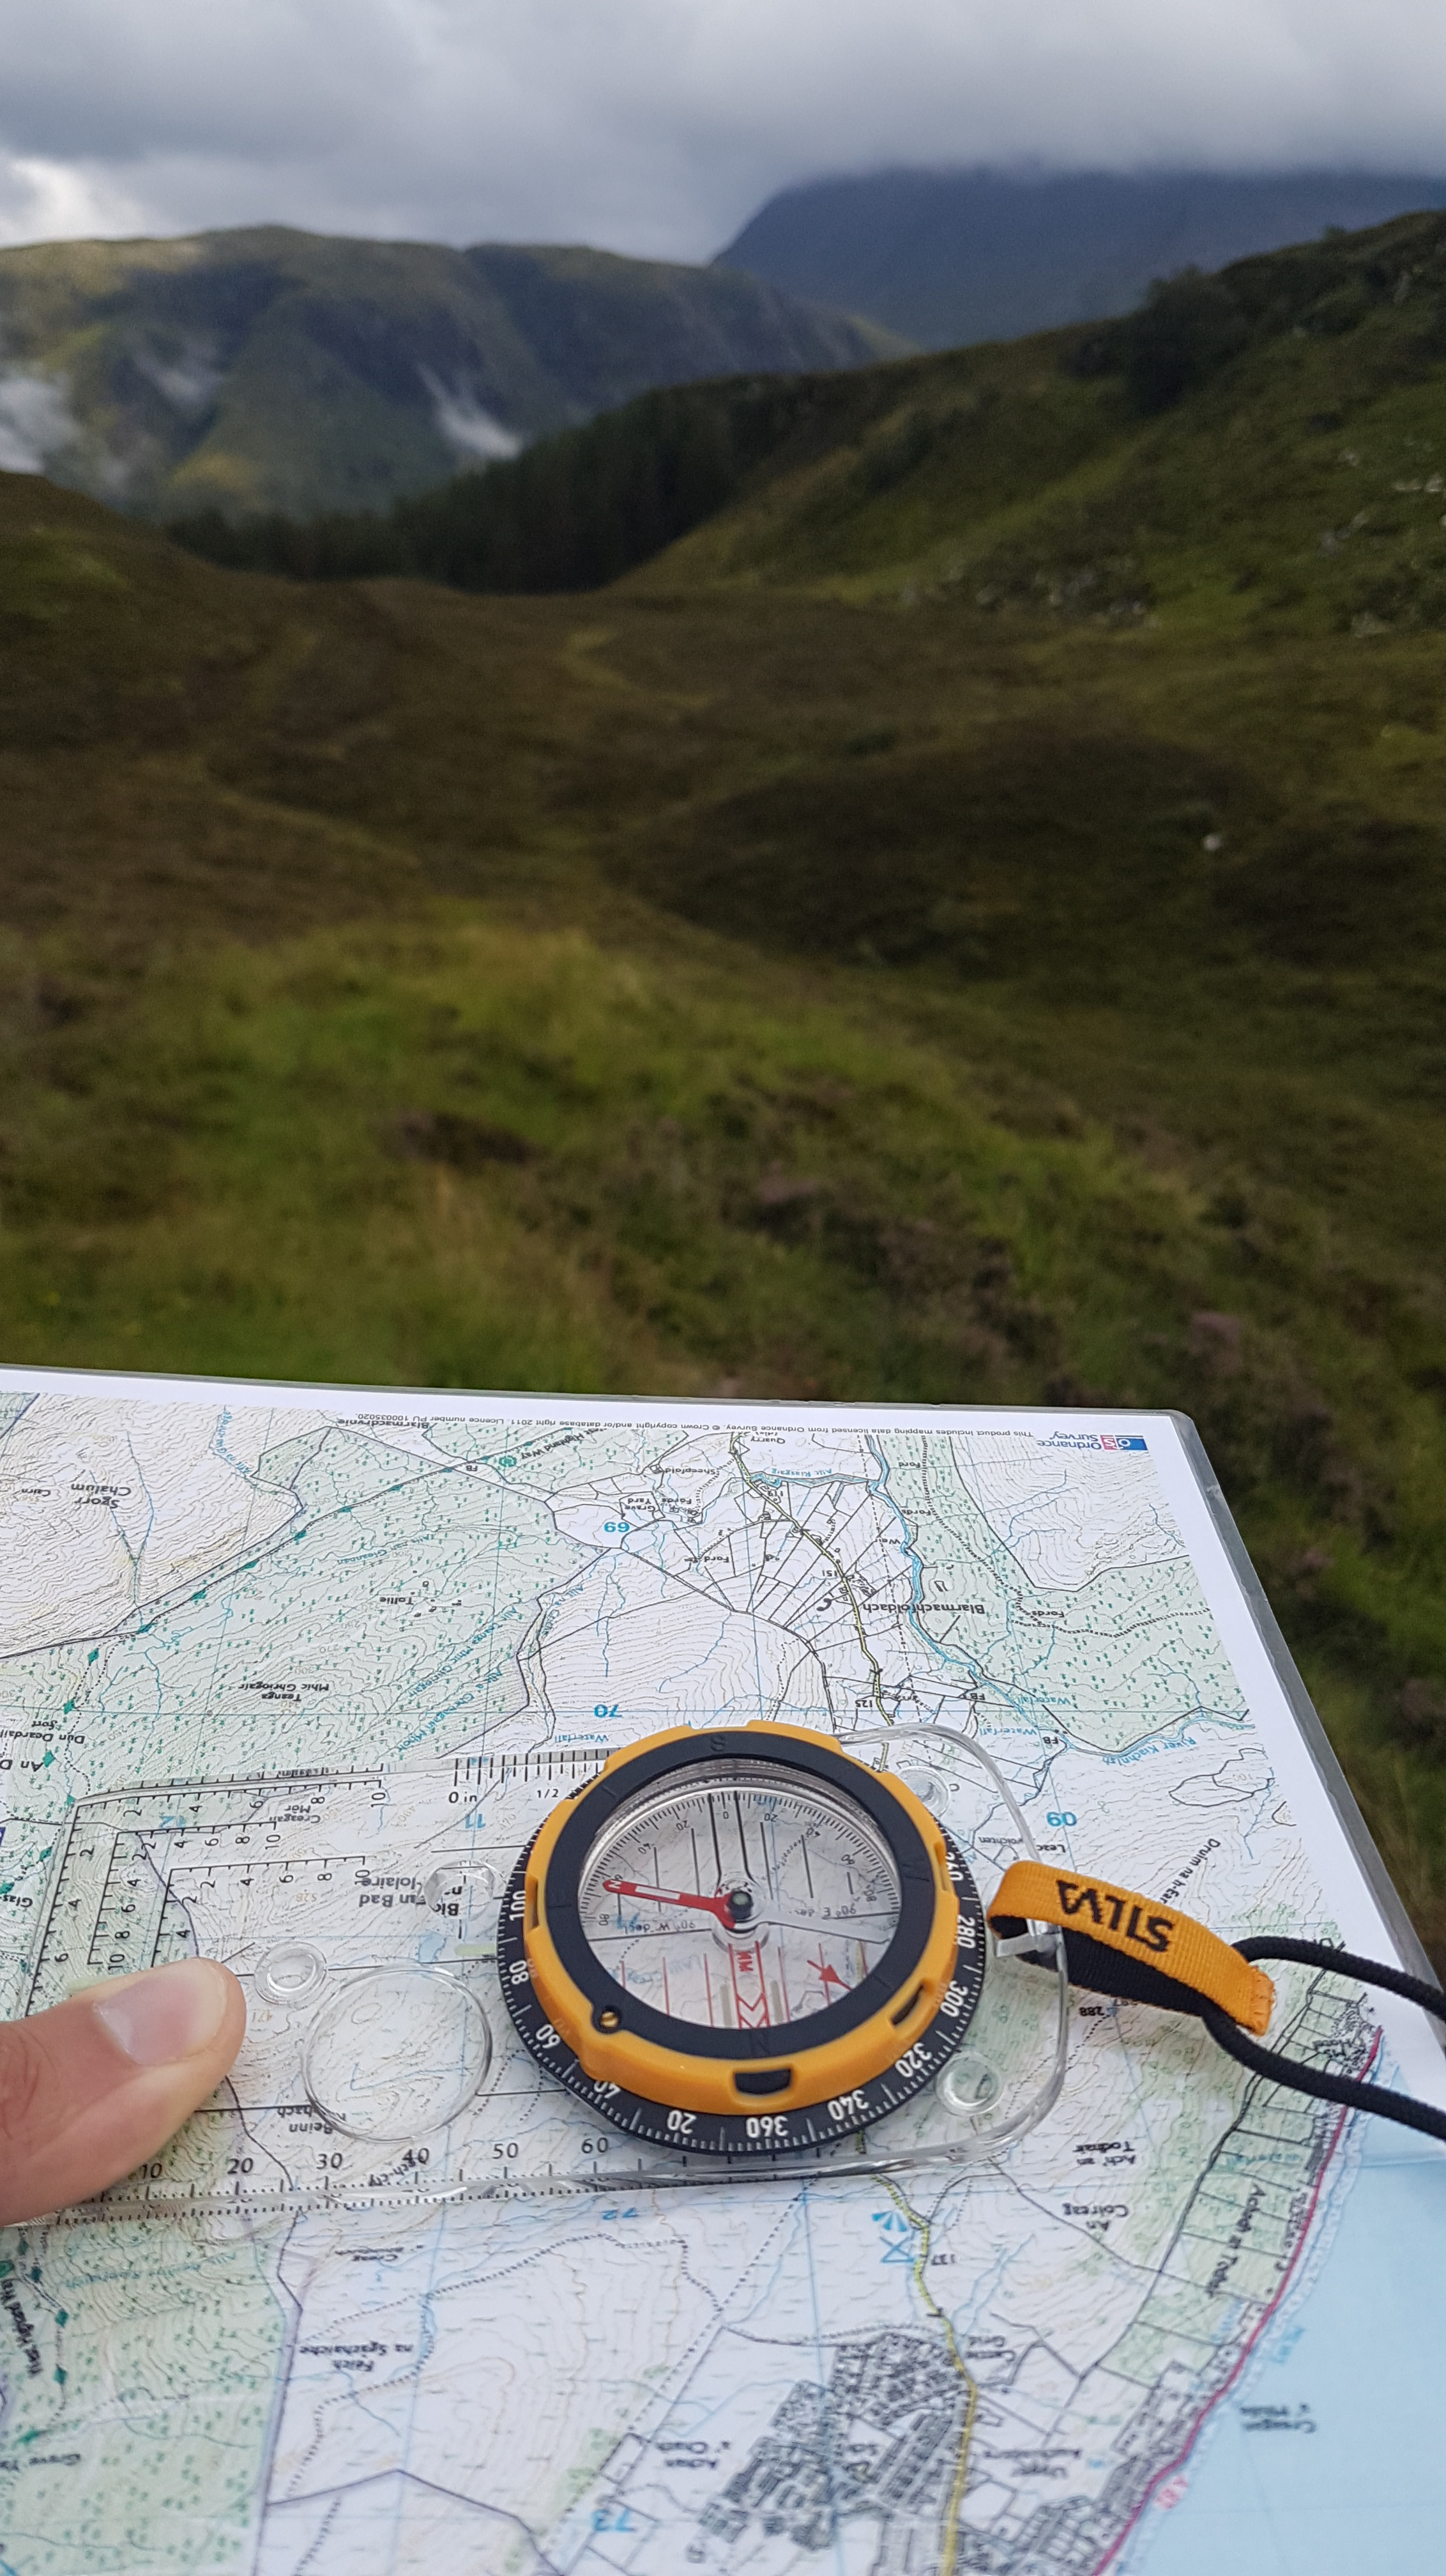 Hill Skills Course, Navigation Course, Learn Hill Walking, Mountain Skills Course, Learn to Navigate, Intro to Hill walking course